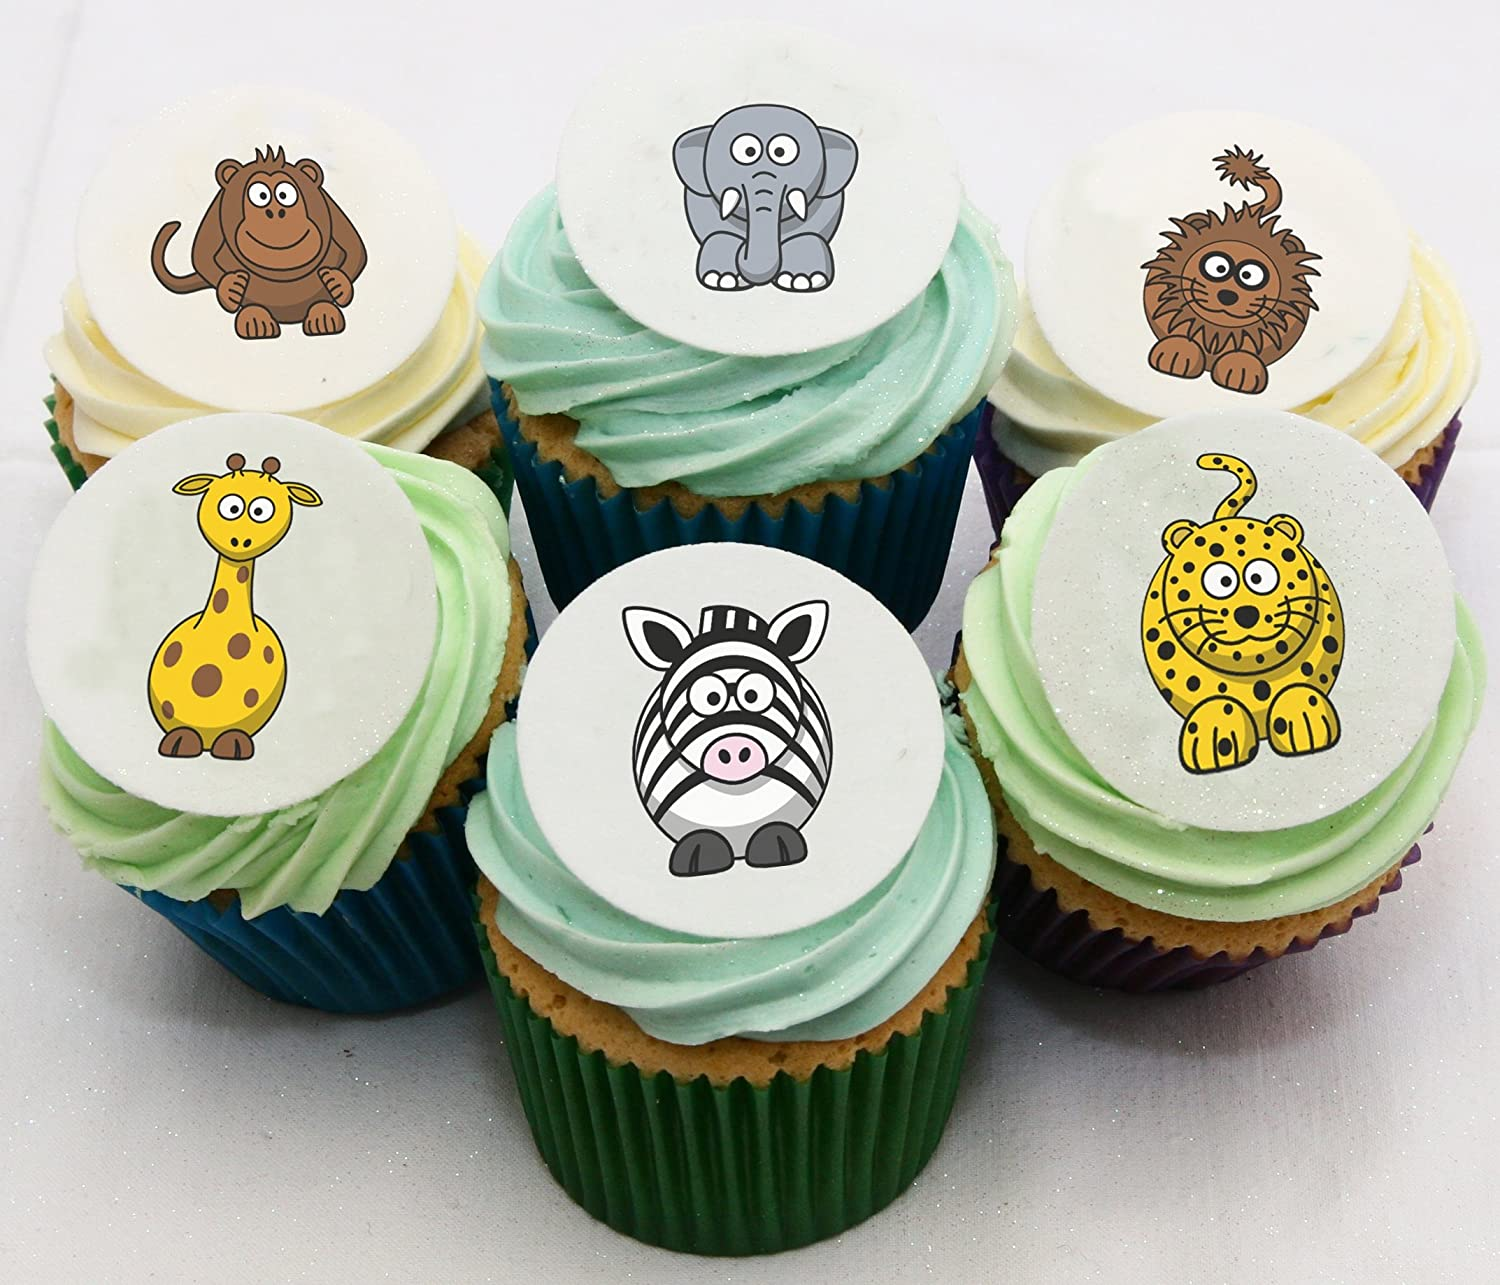 48 Wild Animal Cake Decorations Holly Cupcakes